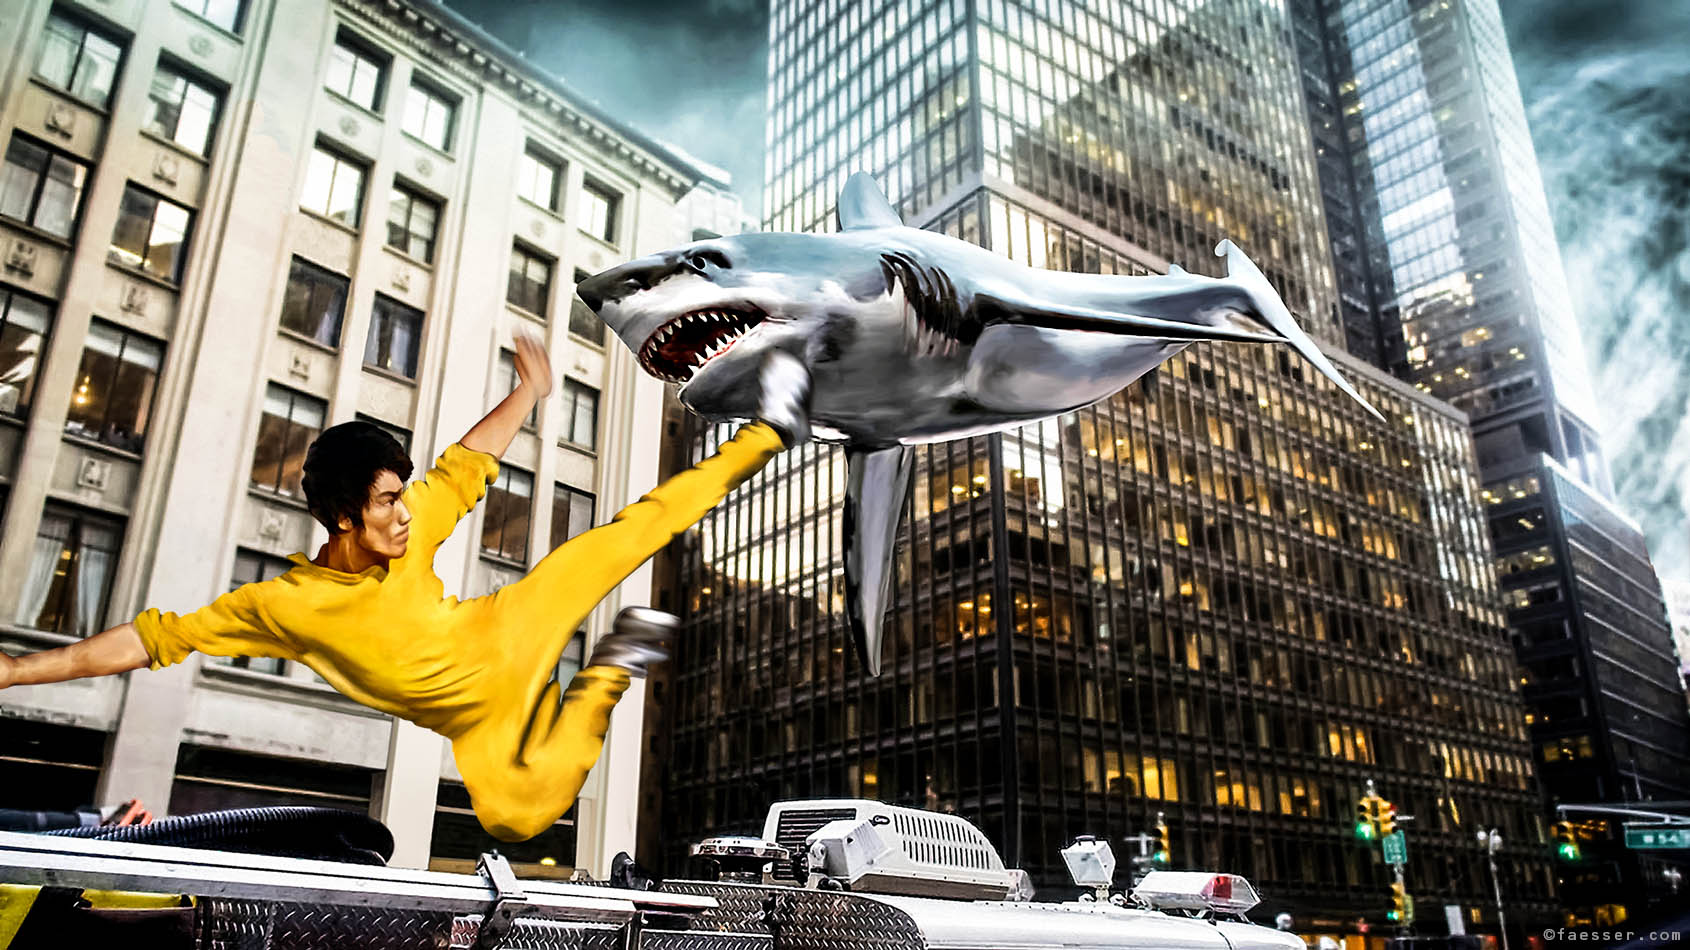 Bruce Lee is fighting against Sharknado in Manhattan; artist Roland Faesser, sculptor and painter 2016